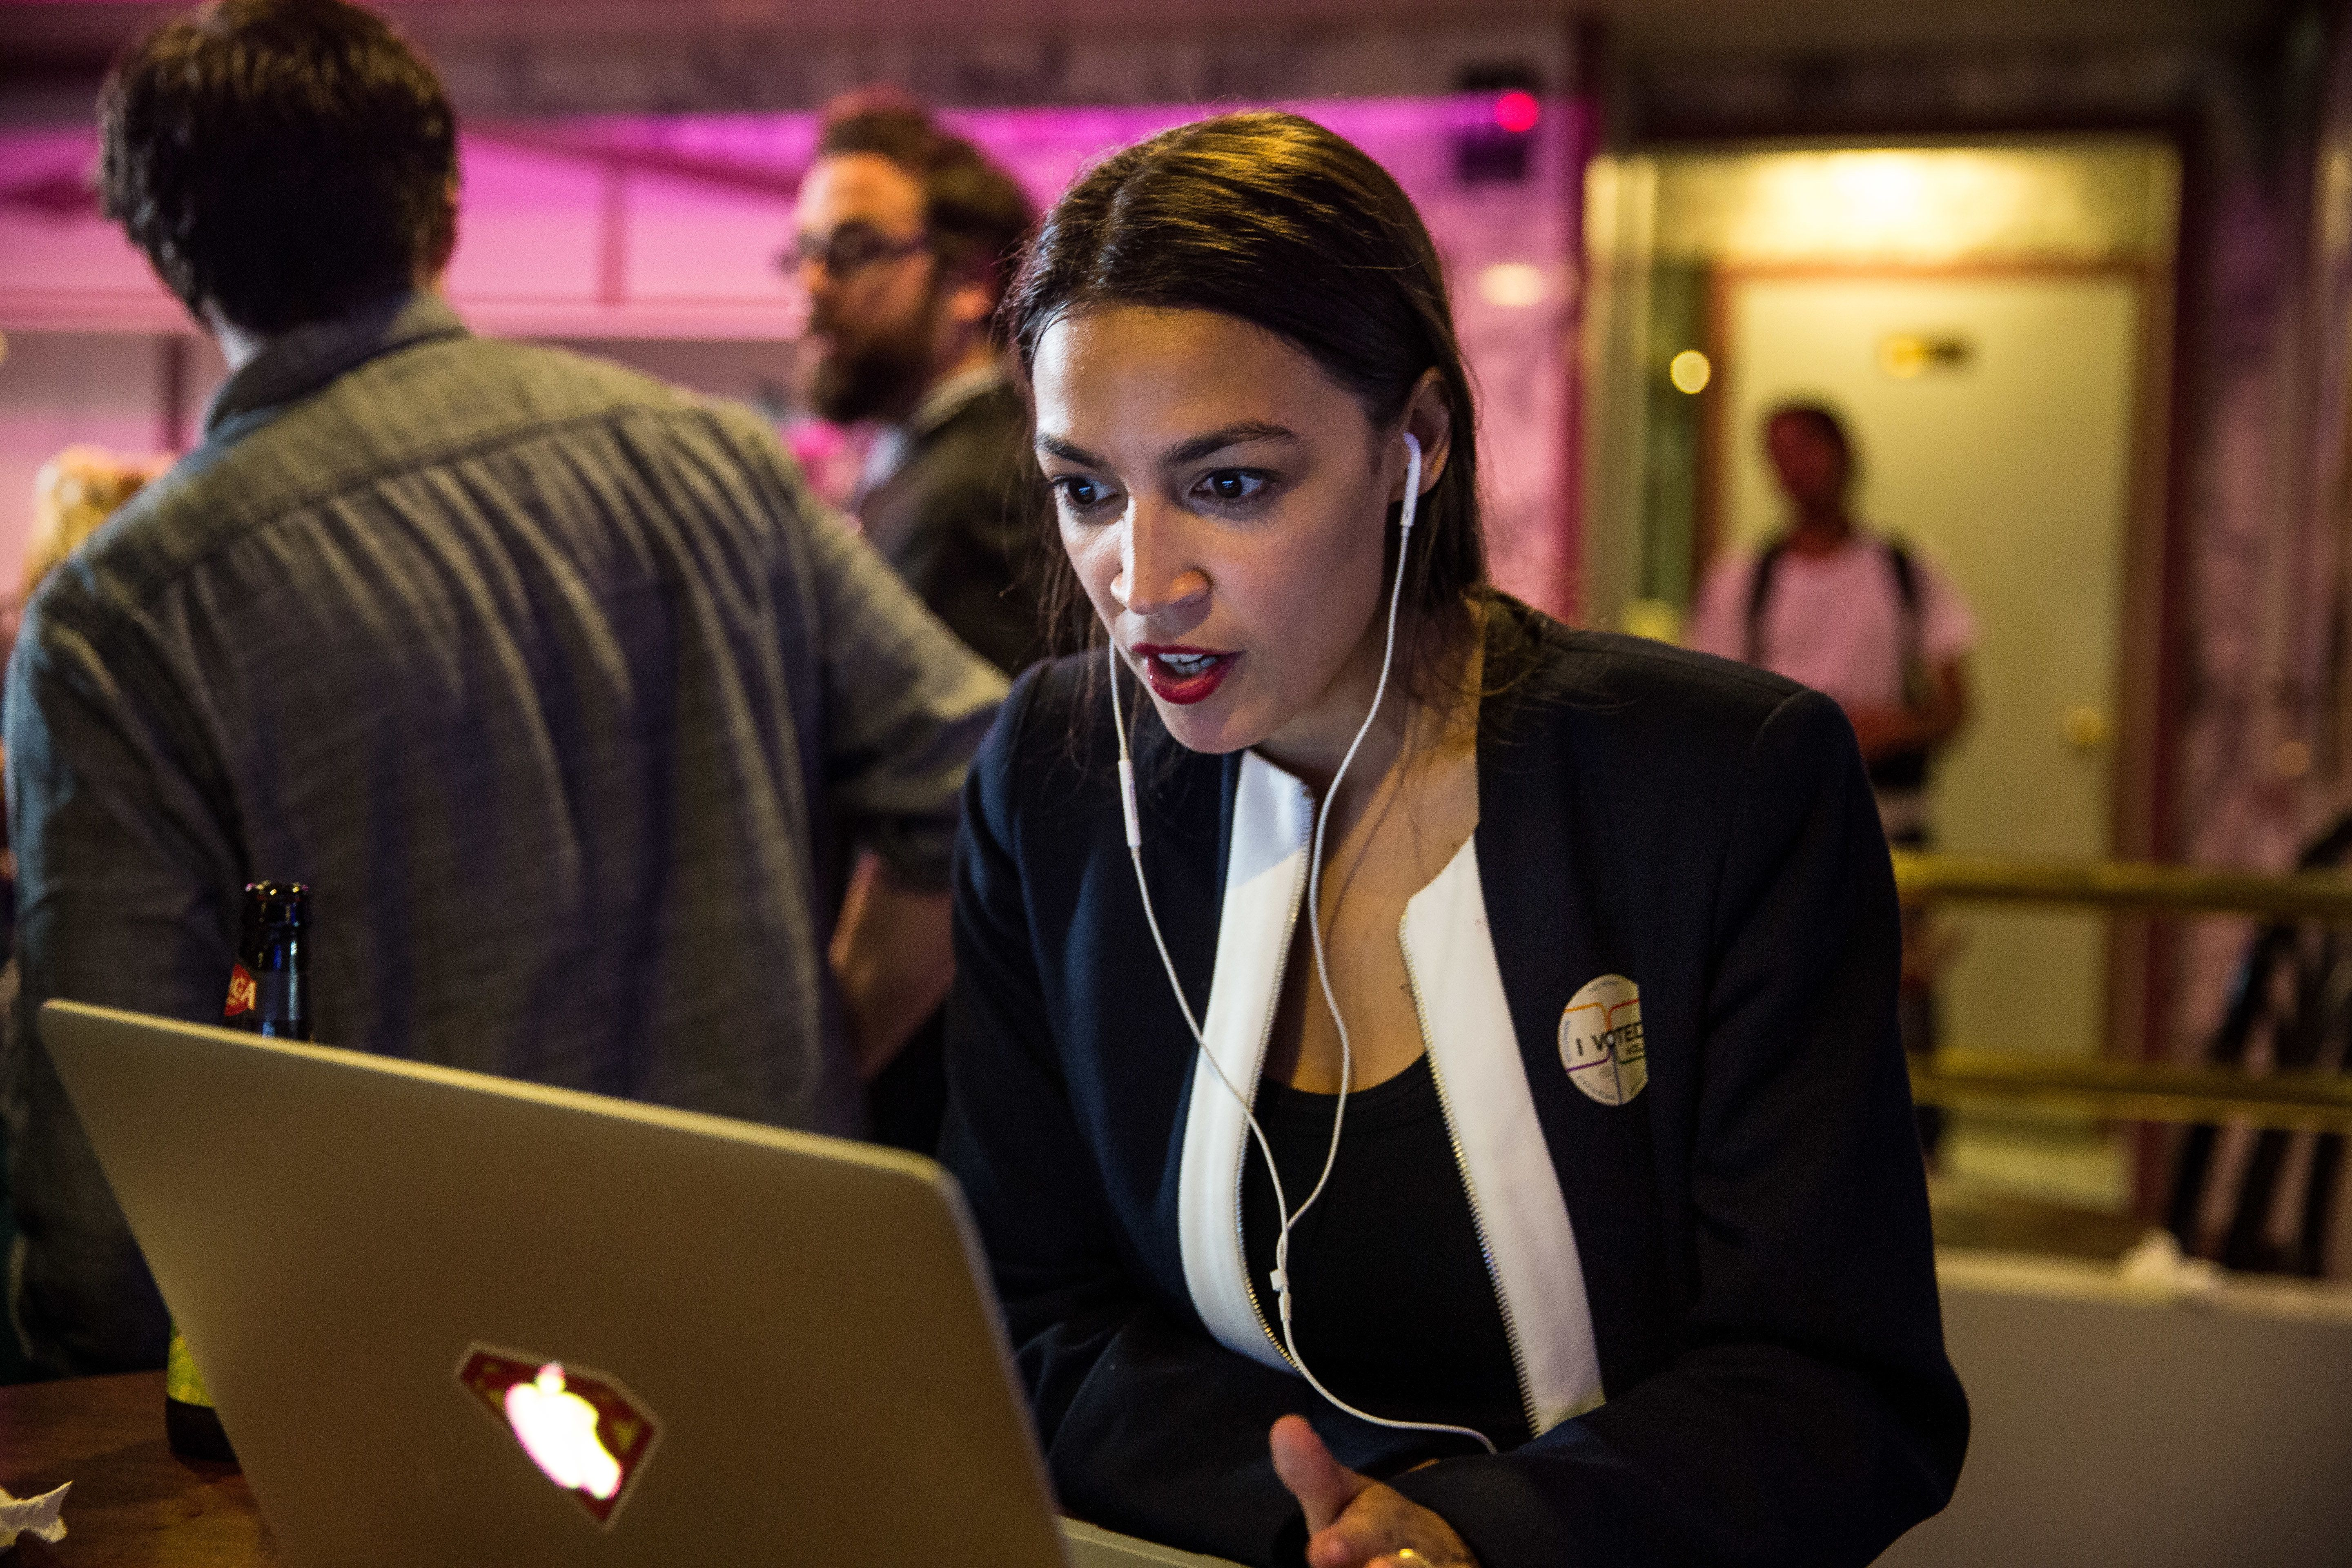 NEW YORK, NY - JUNE 26: Progressive challenger Alexandria Ocasio-Cortez celebrartes  at a victory party in the Bronx after upsetting incumbent Democratic Representative Joseph Crowly on June 26, 2018 in New York City.  Ocasio-Cortez upset Rep. Joseph Crowley in New York's 14th Congressional District, which includes parts of the Bronx and Queens. (Photo by Scott Heins/Getty Images)